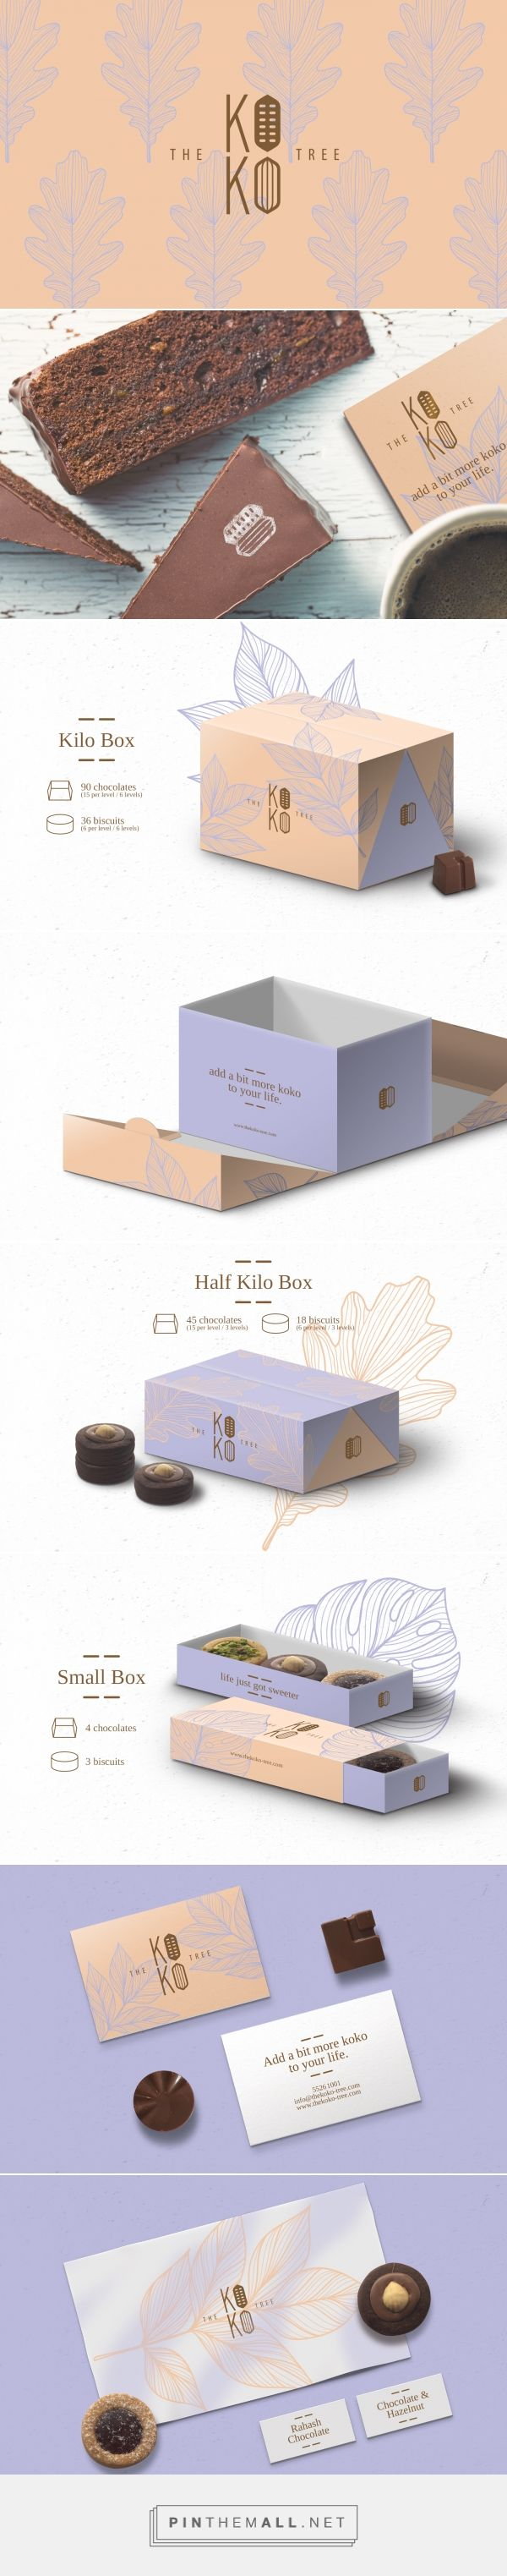 Branding, graphic design and packaging for The Koko Tree on Behance by Studio…